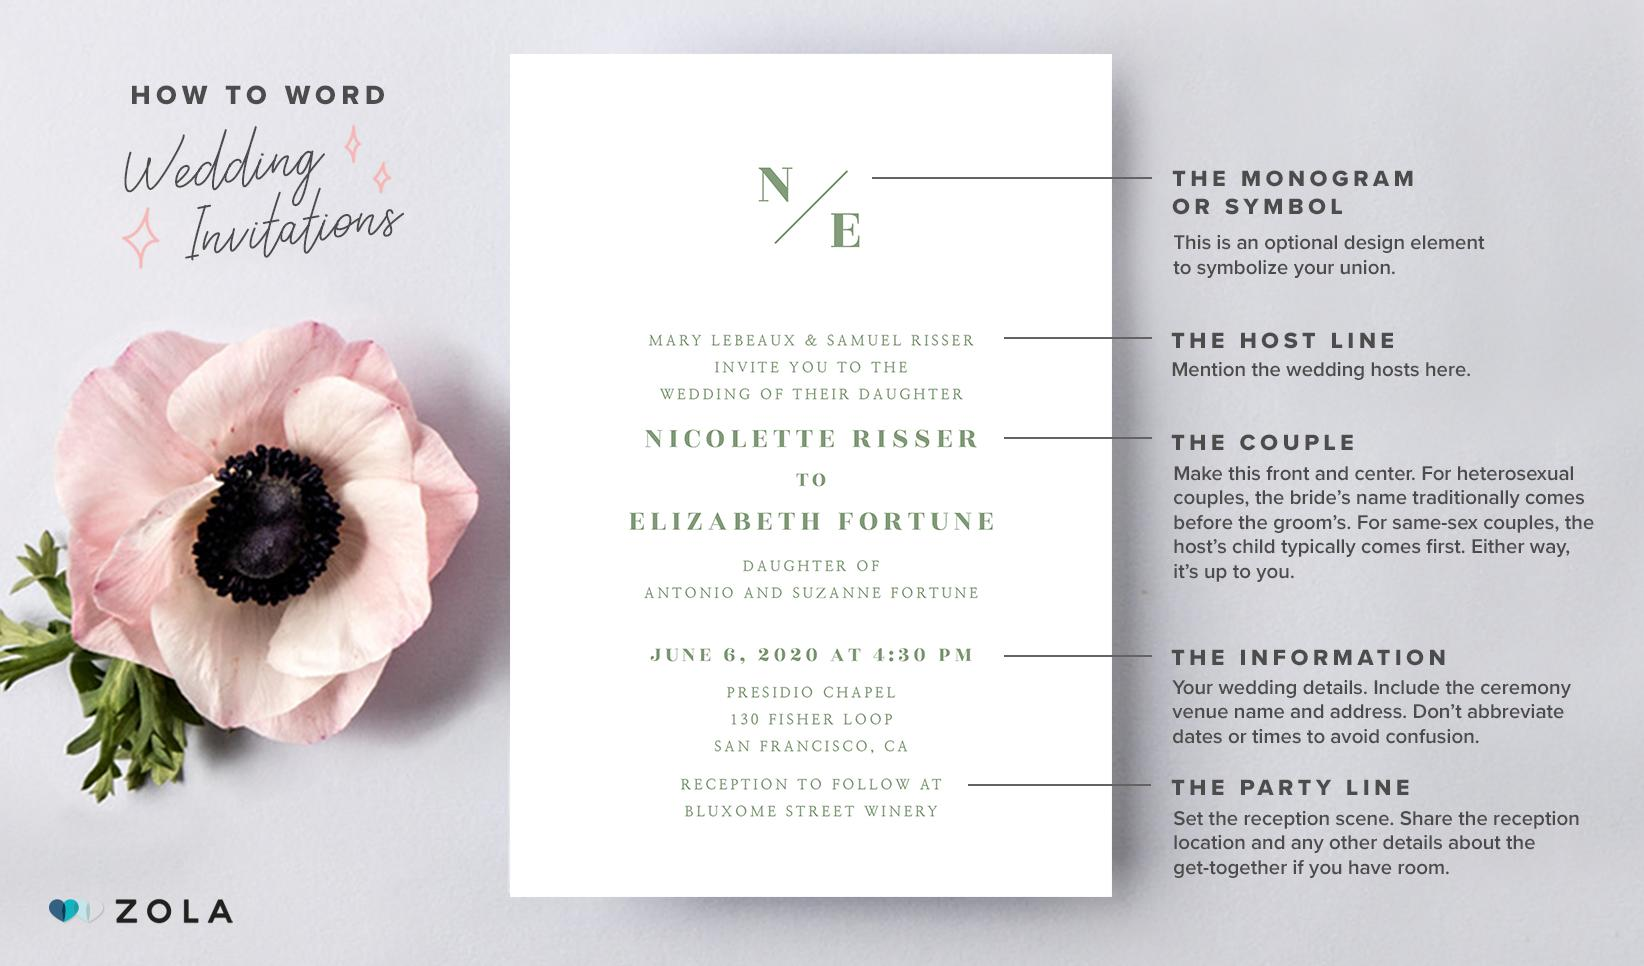 Wedding Invite Wording From Bride And Groom.How To Word Wedding Invitations Zola Expert Wedding Advice